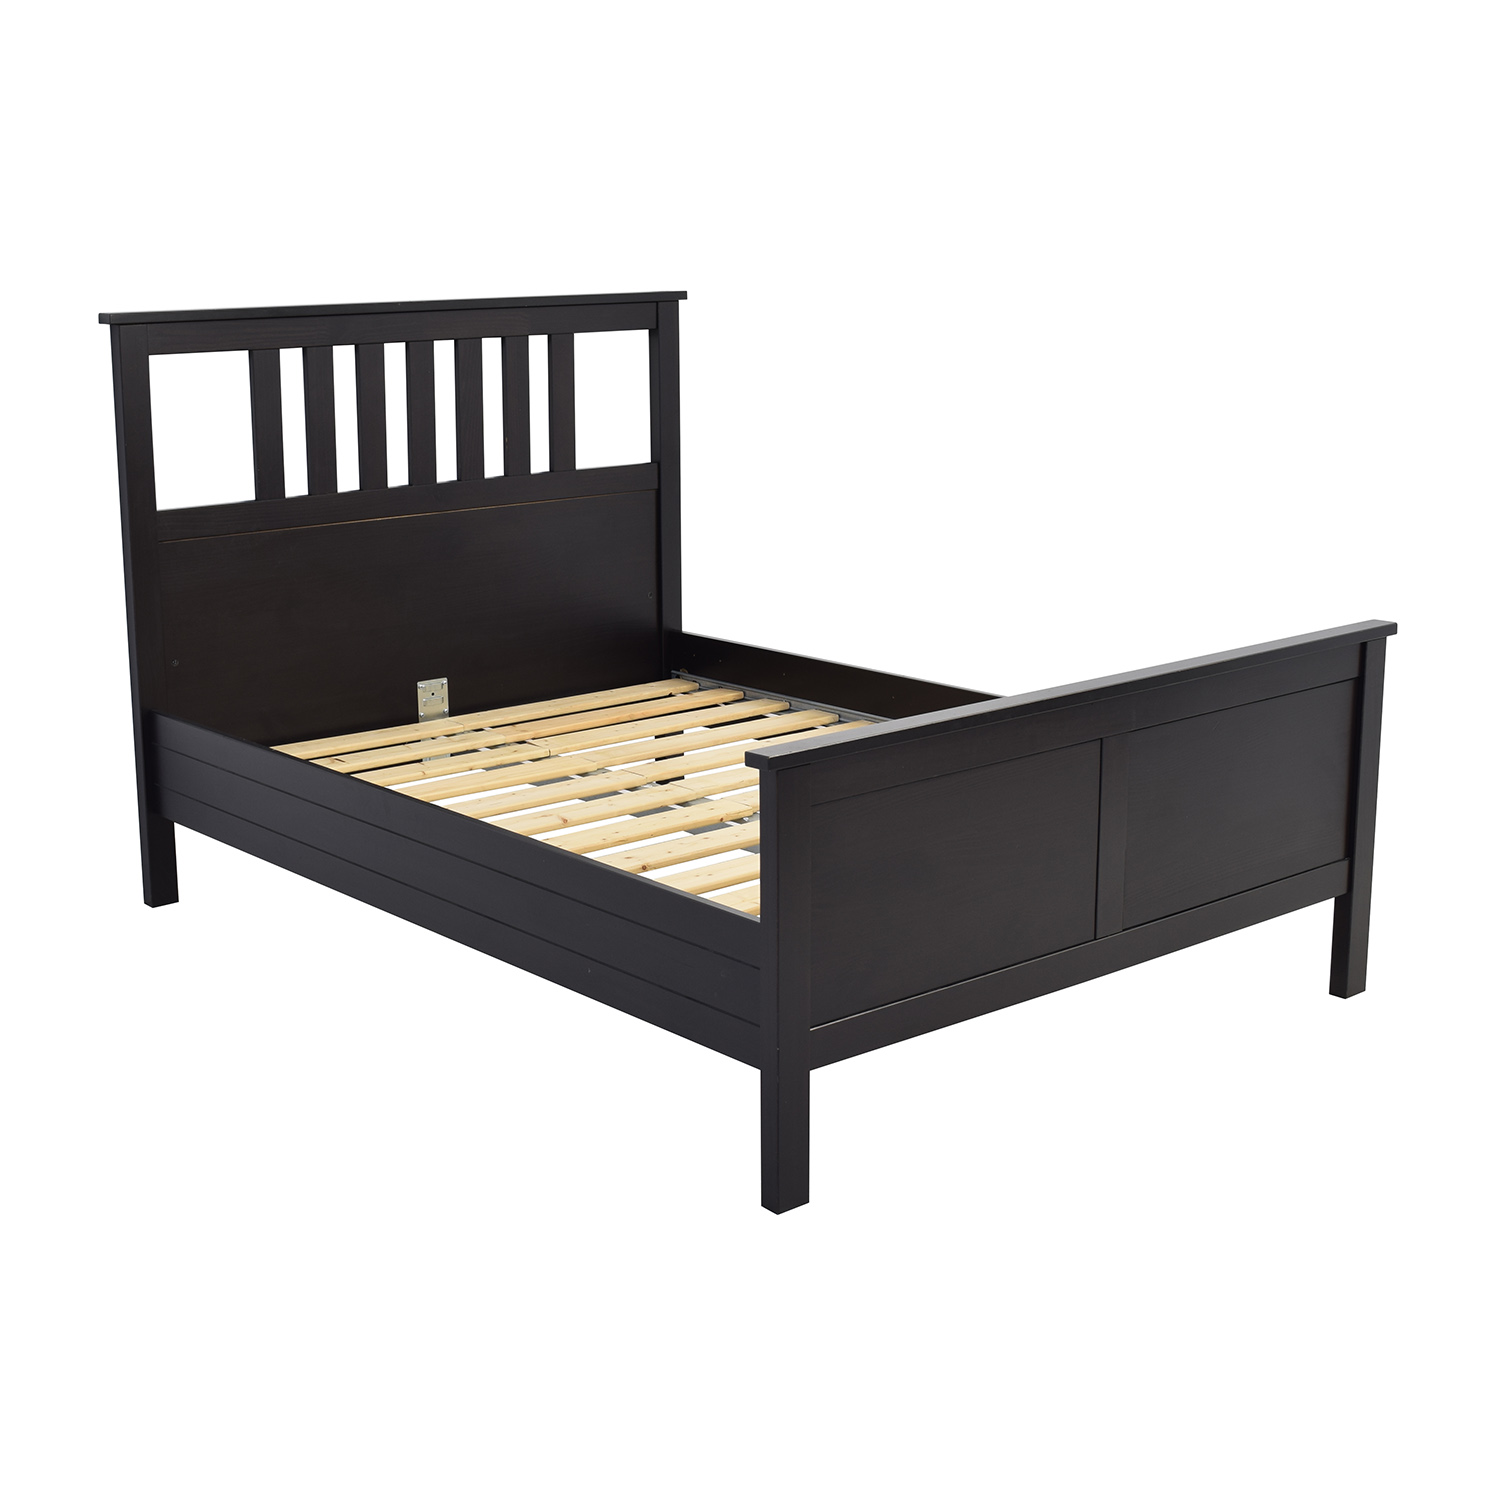 53 off ikea ikea dark brown wood queen bed frame beds for Ikea mattress frame